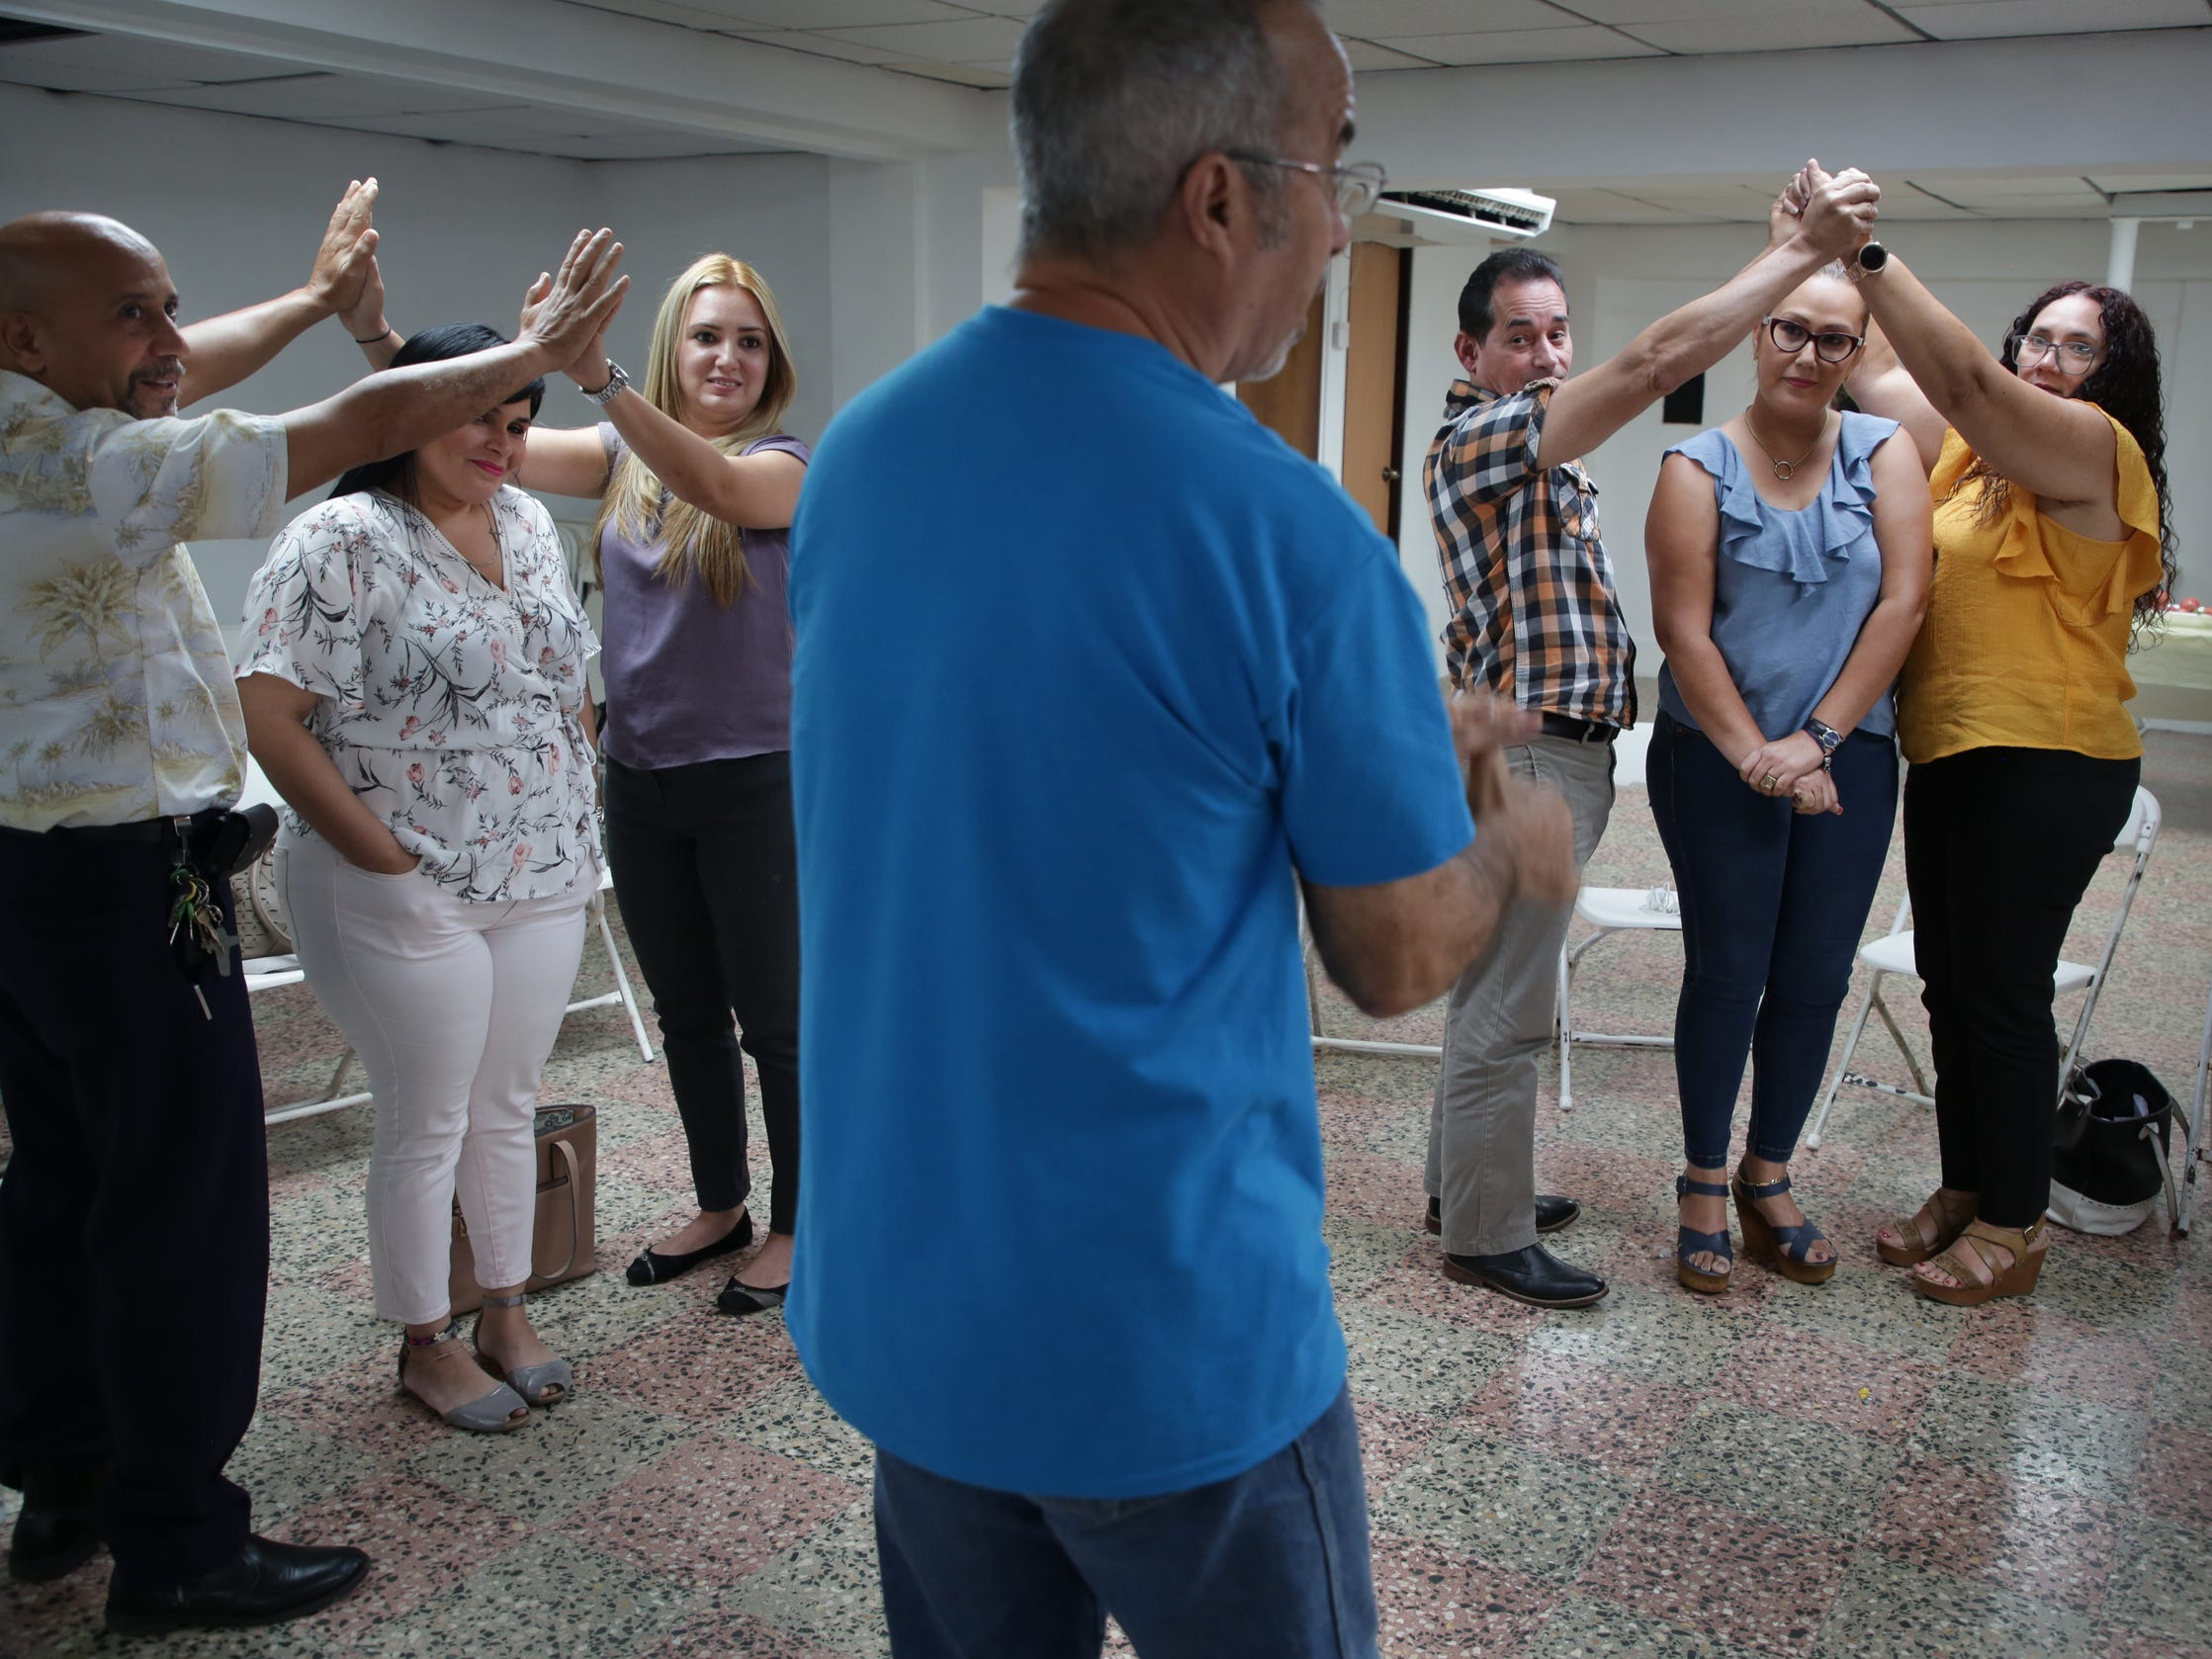 """People participate in a workshop called """"Managing your emotions after Maria"""" in Utuado, Puerto Rico. The workshop is sponsored by the Ford Fund and helps people learn how to deal with their  feelings and emotions in relation to the trauma experienced in the aftermath of hurricane Maria."""